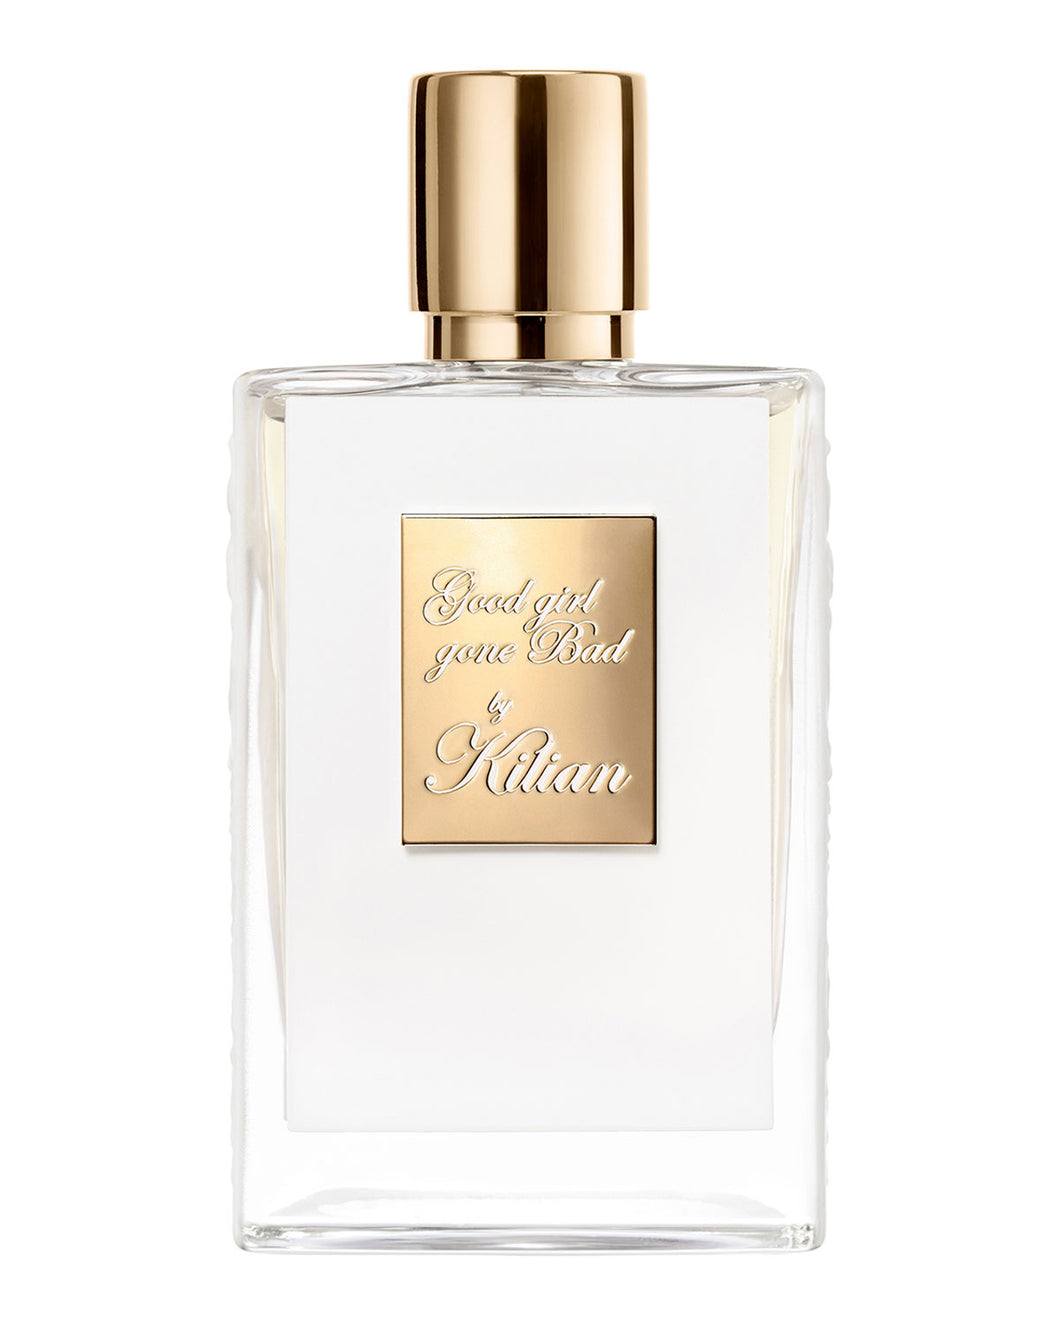 Kilian Good Girl Gone Bad Eau de Parfum, 1.7 oz.(Refillable Bottle, No Clutch)